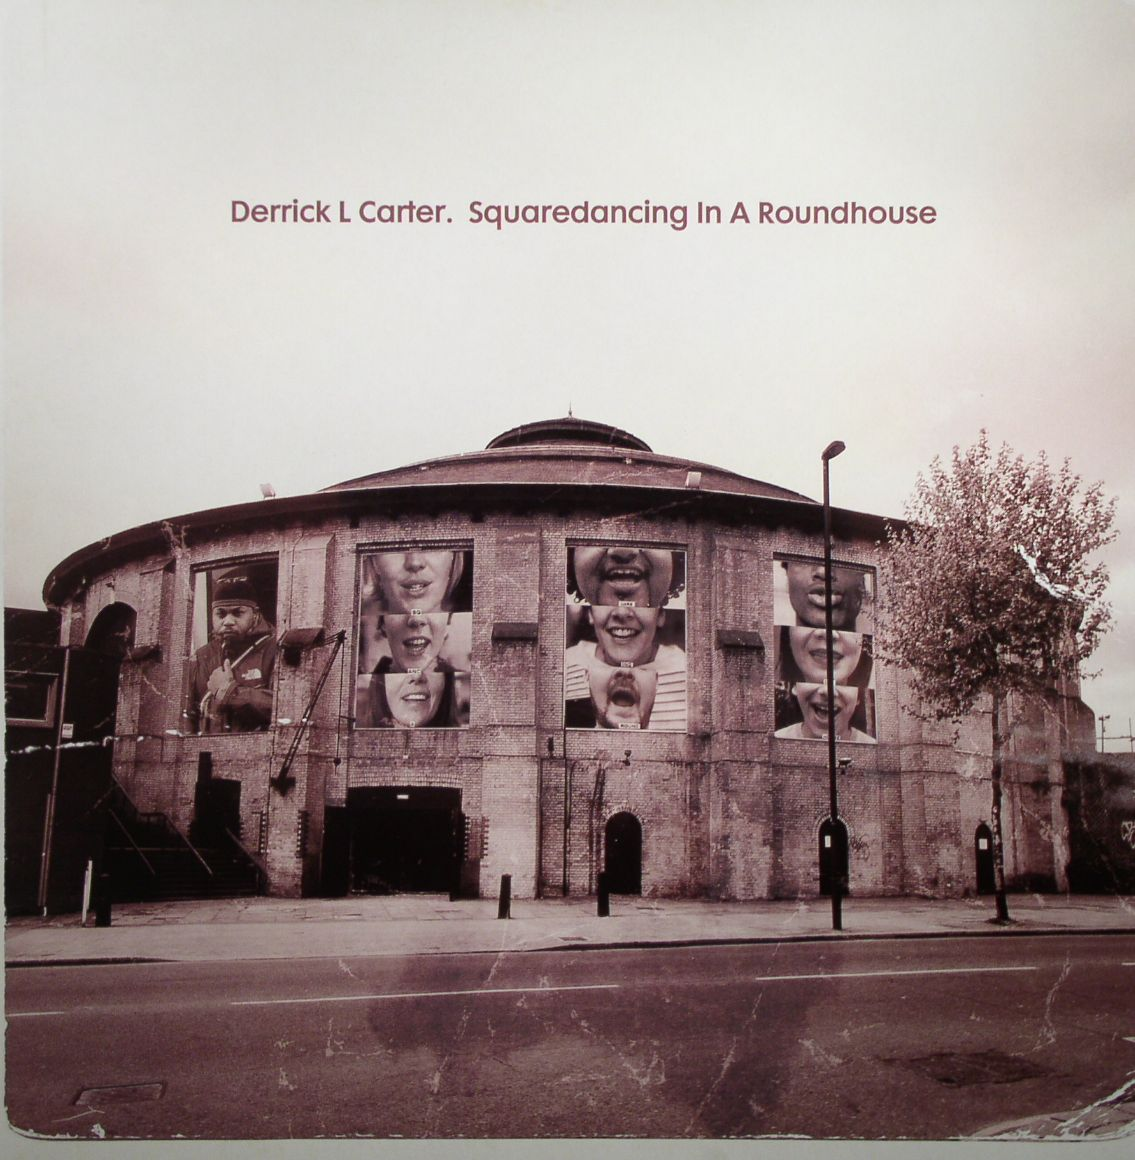 Derrick l carter squaredancing in a round house remixes for House remixes of classic songs